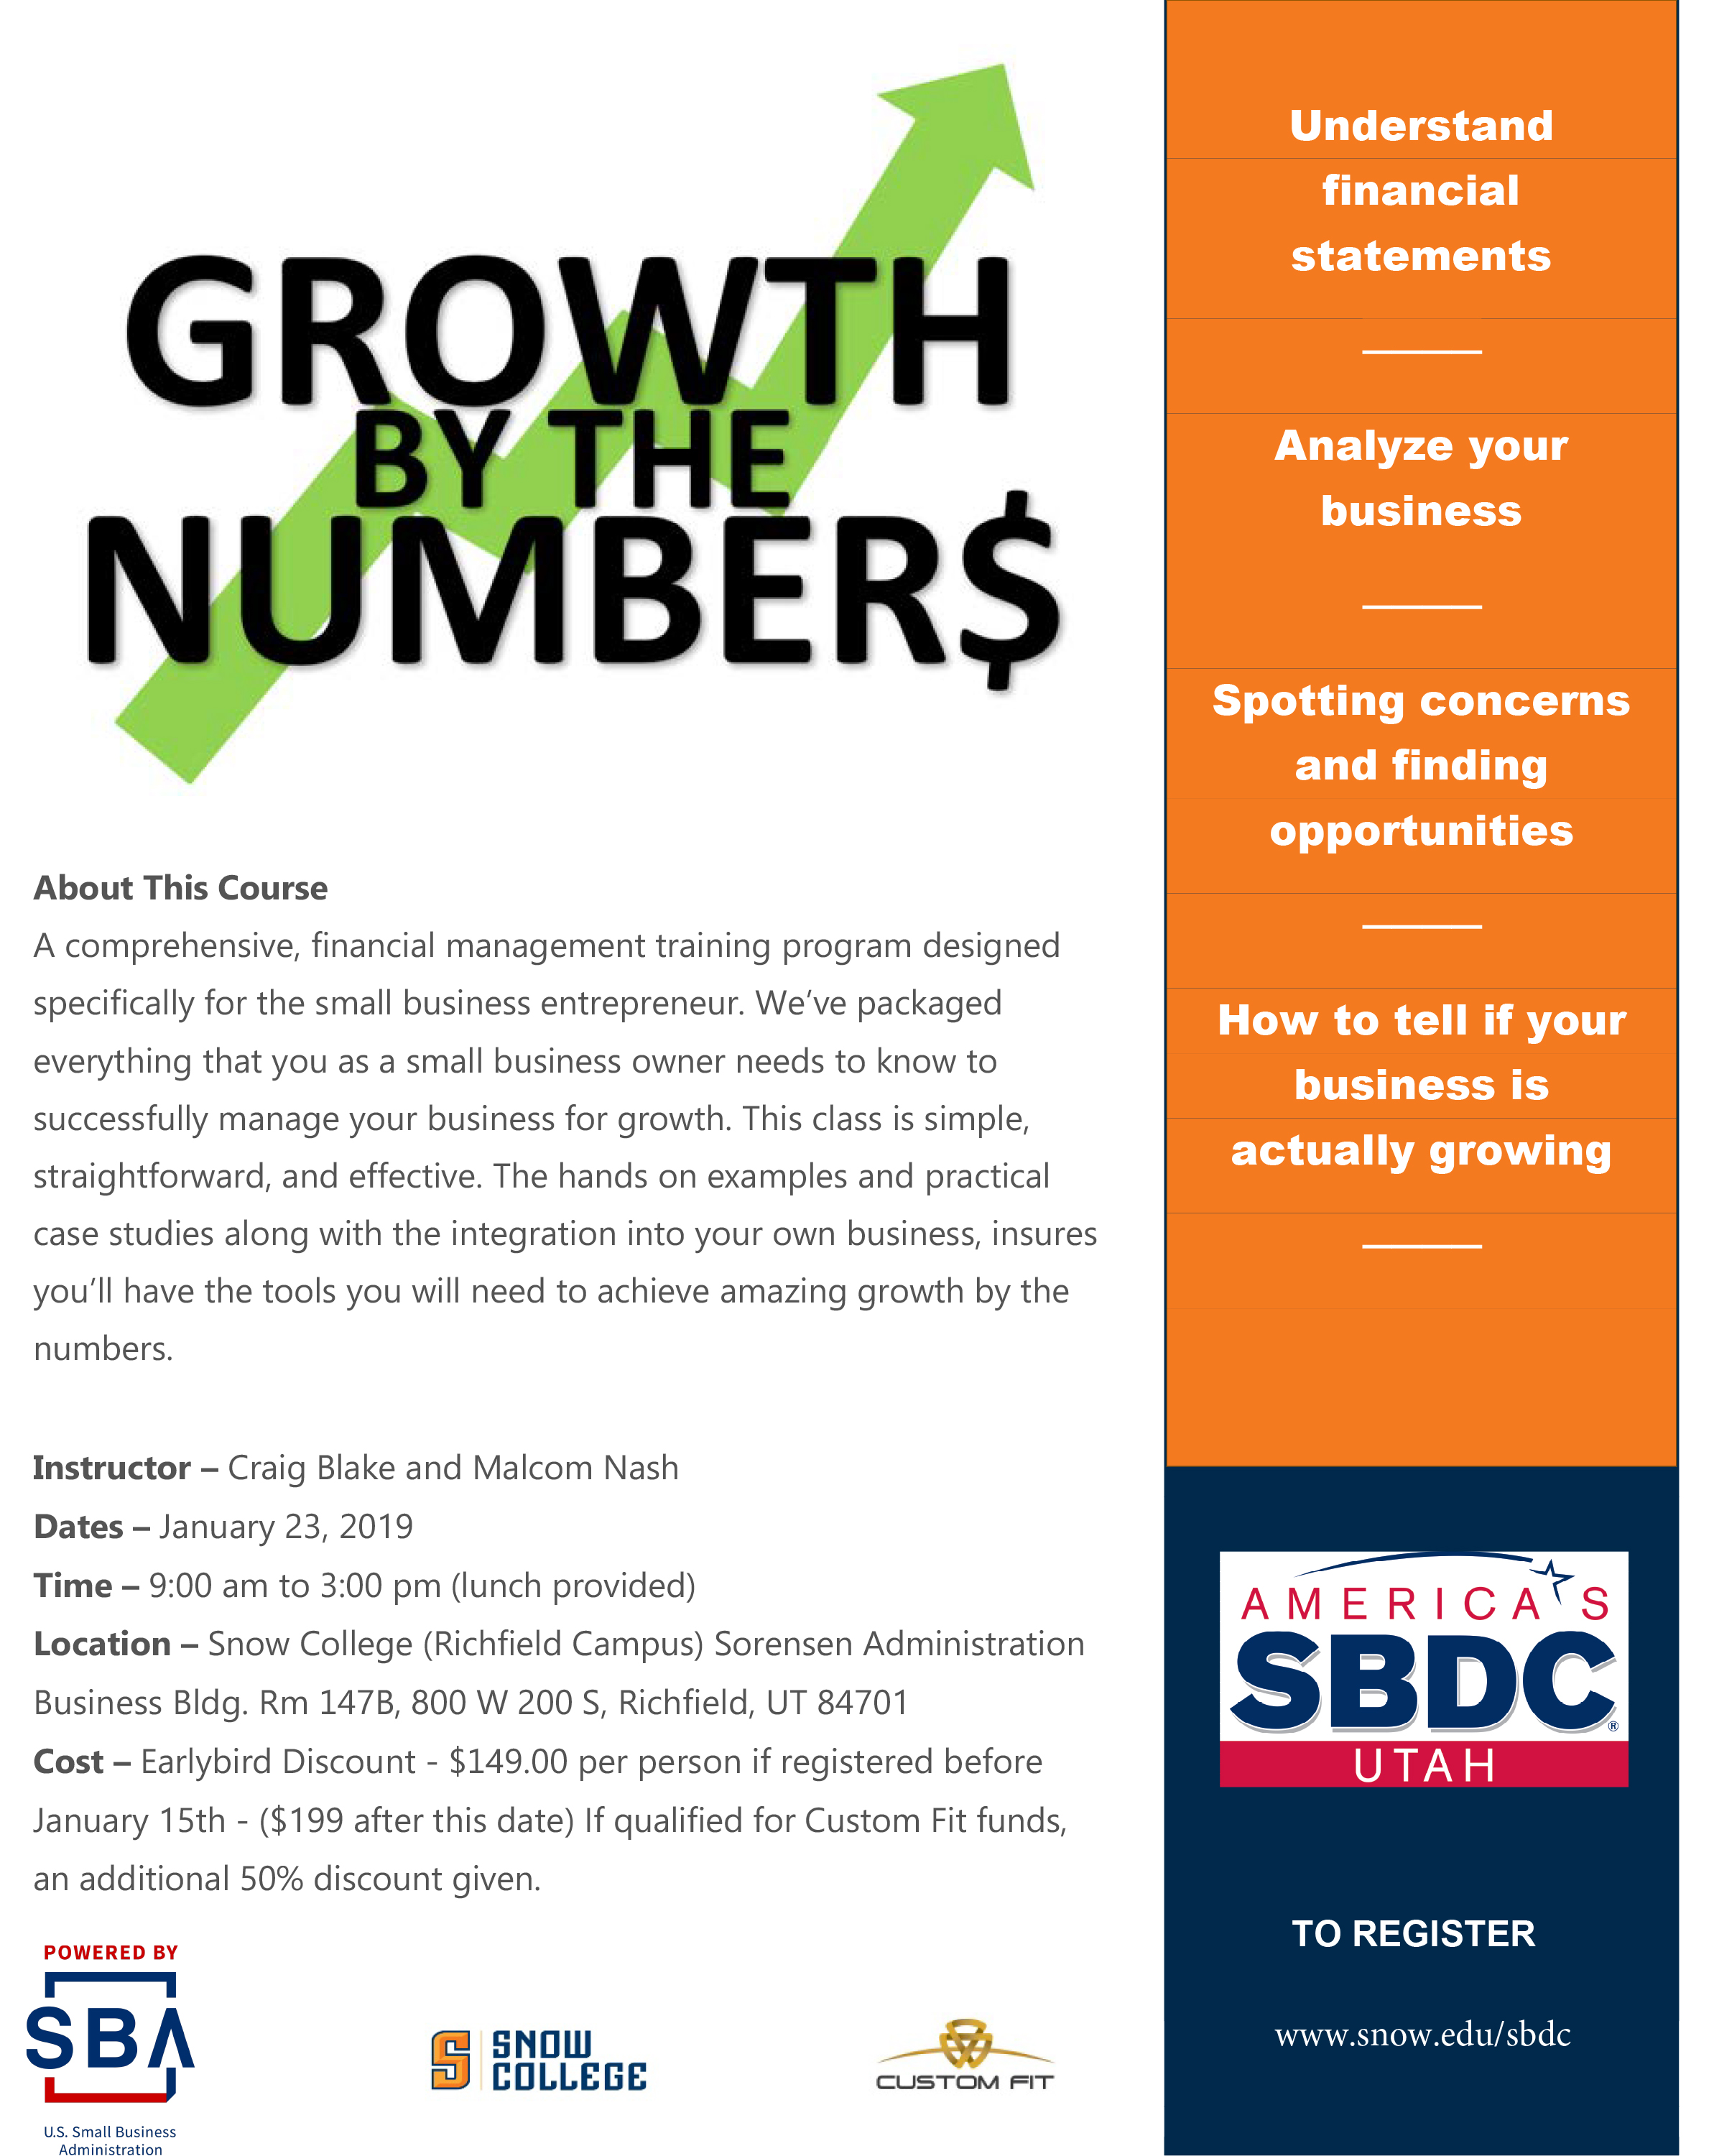 Growth by the Numbers